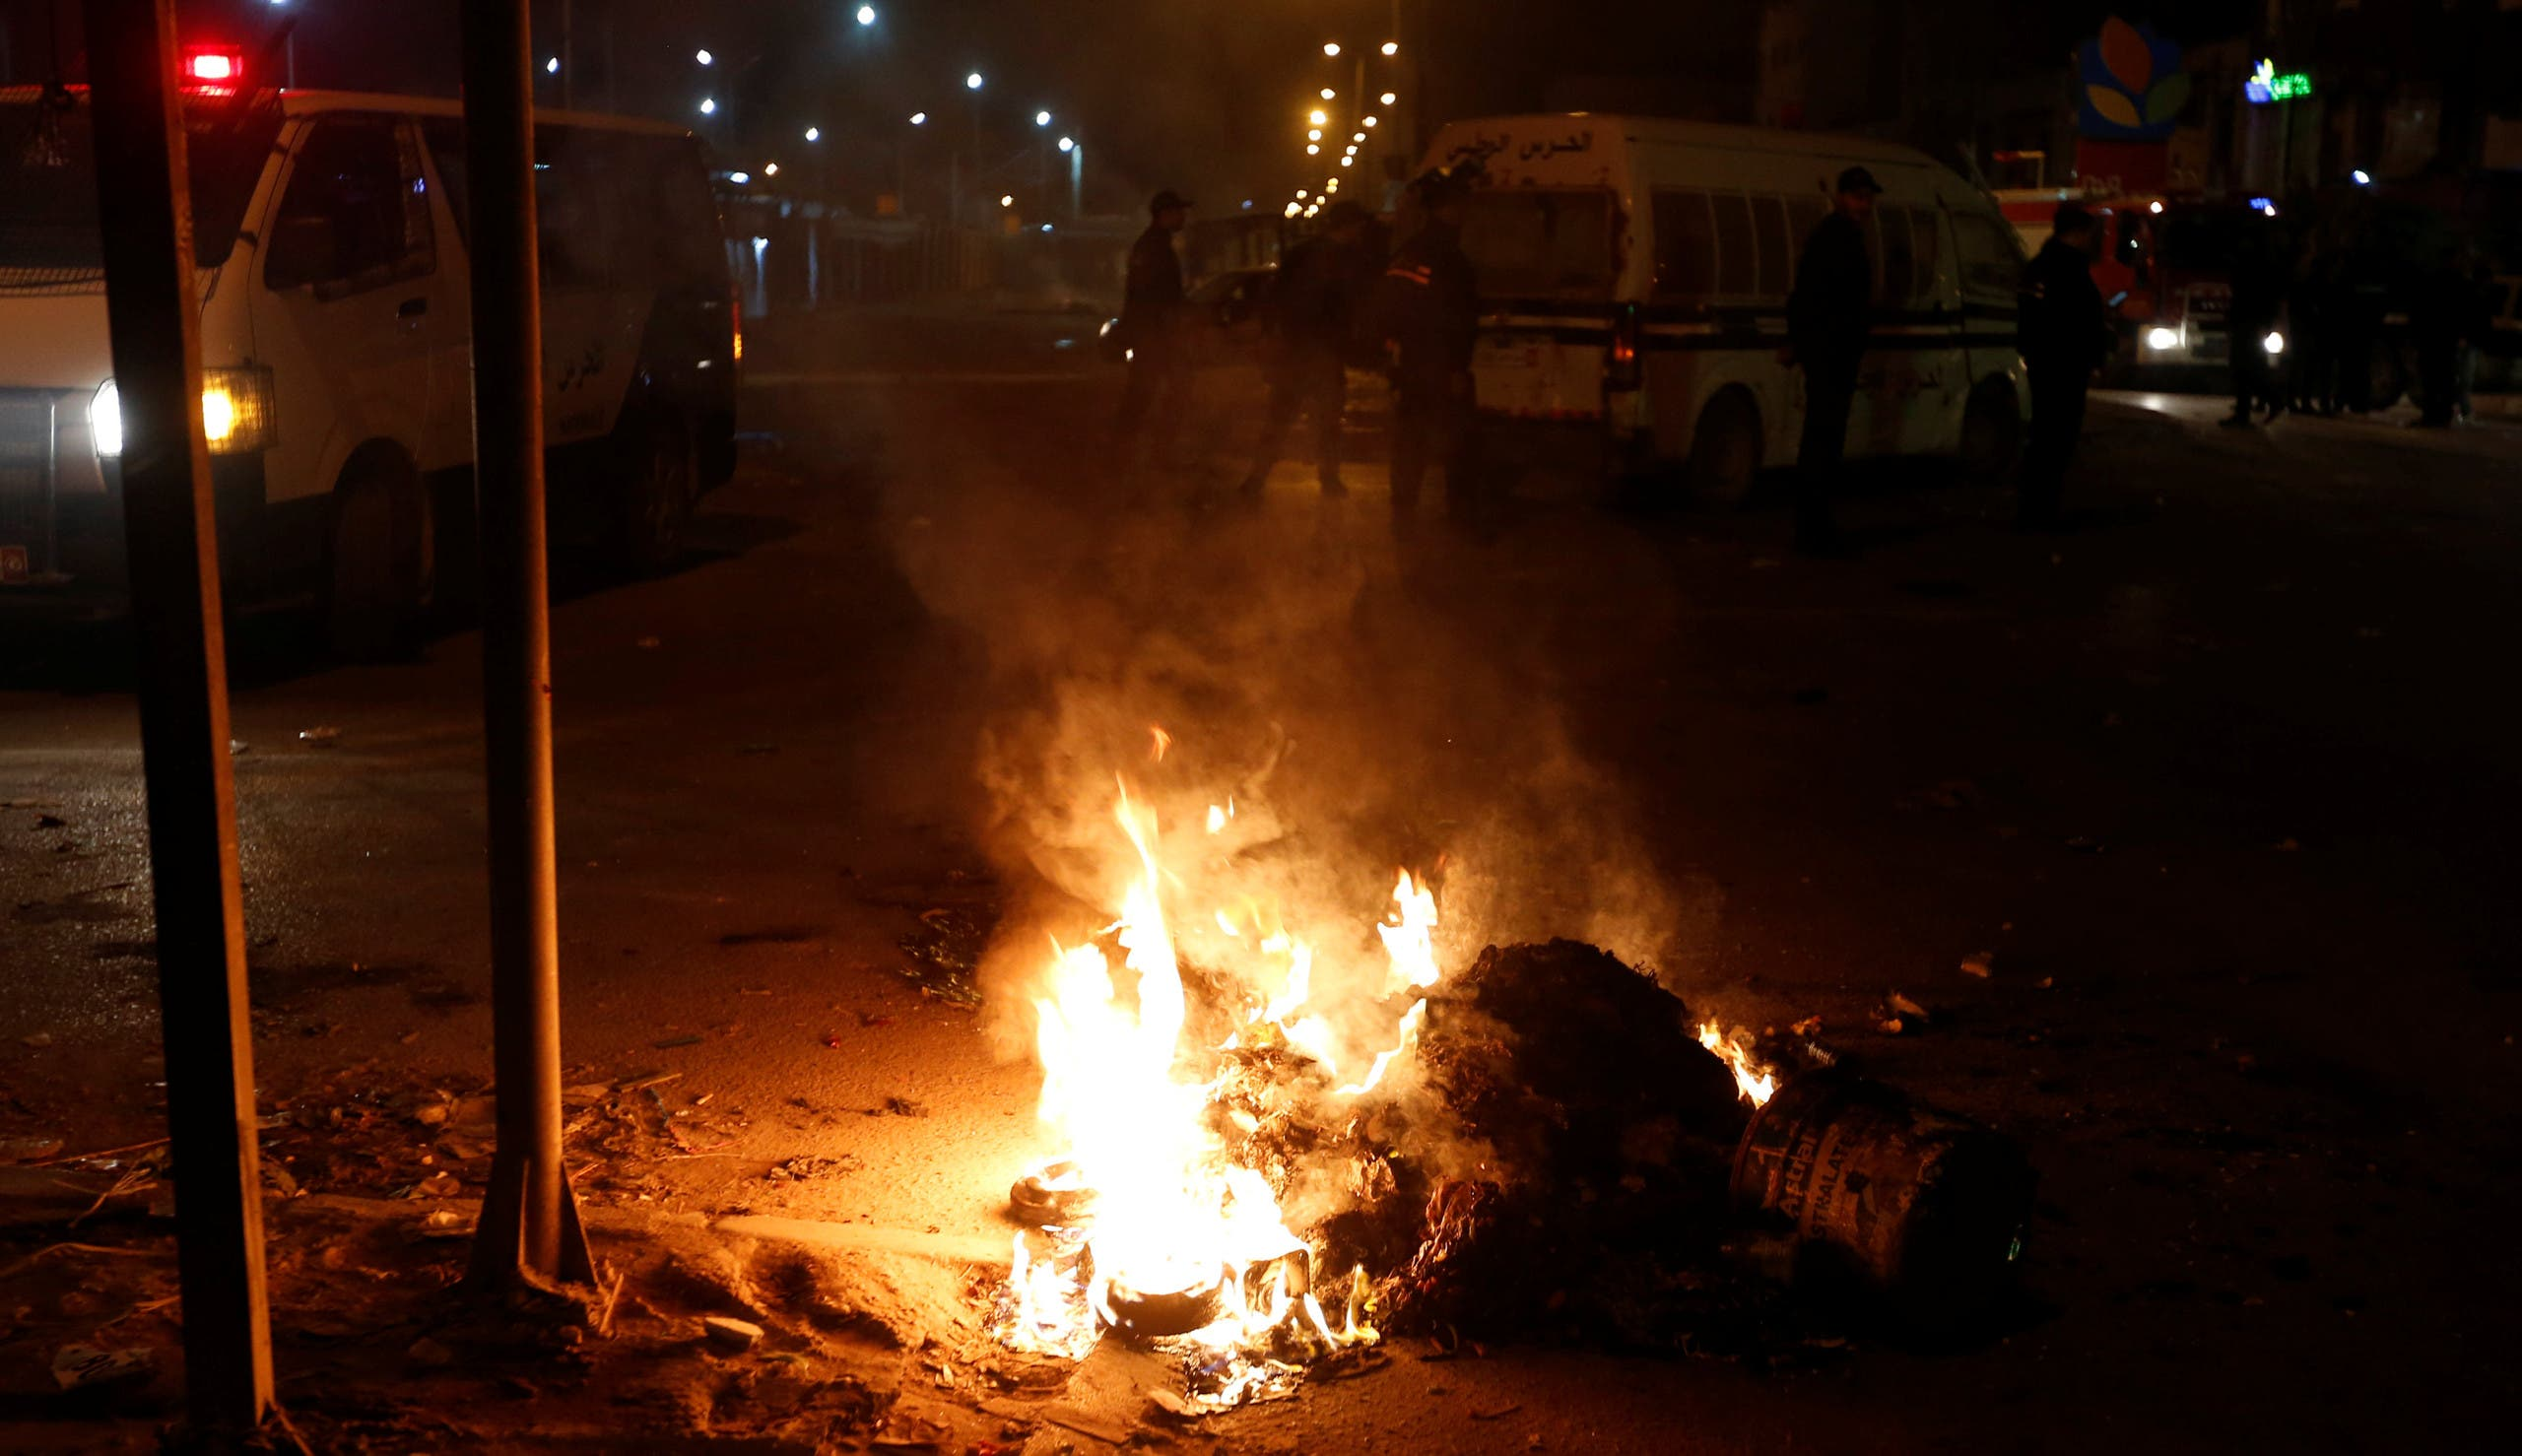 Police vehicles stop in front of burning tires set up by protesters during demonstrations against rising prices and tax increases, in Tunis, Tunisia, January 8, 2018. REUTERS/Zoubeir Souissi